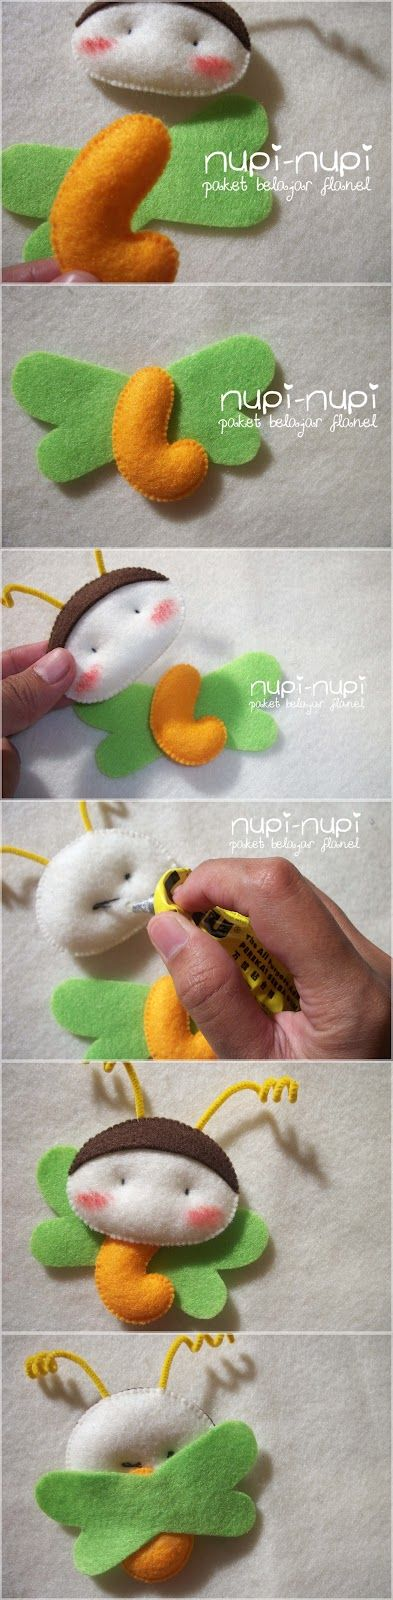 Tutorial by nupi-nupi